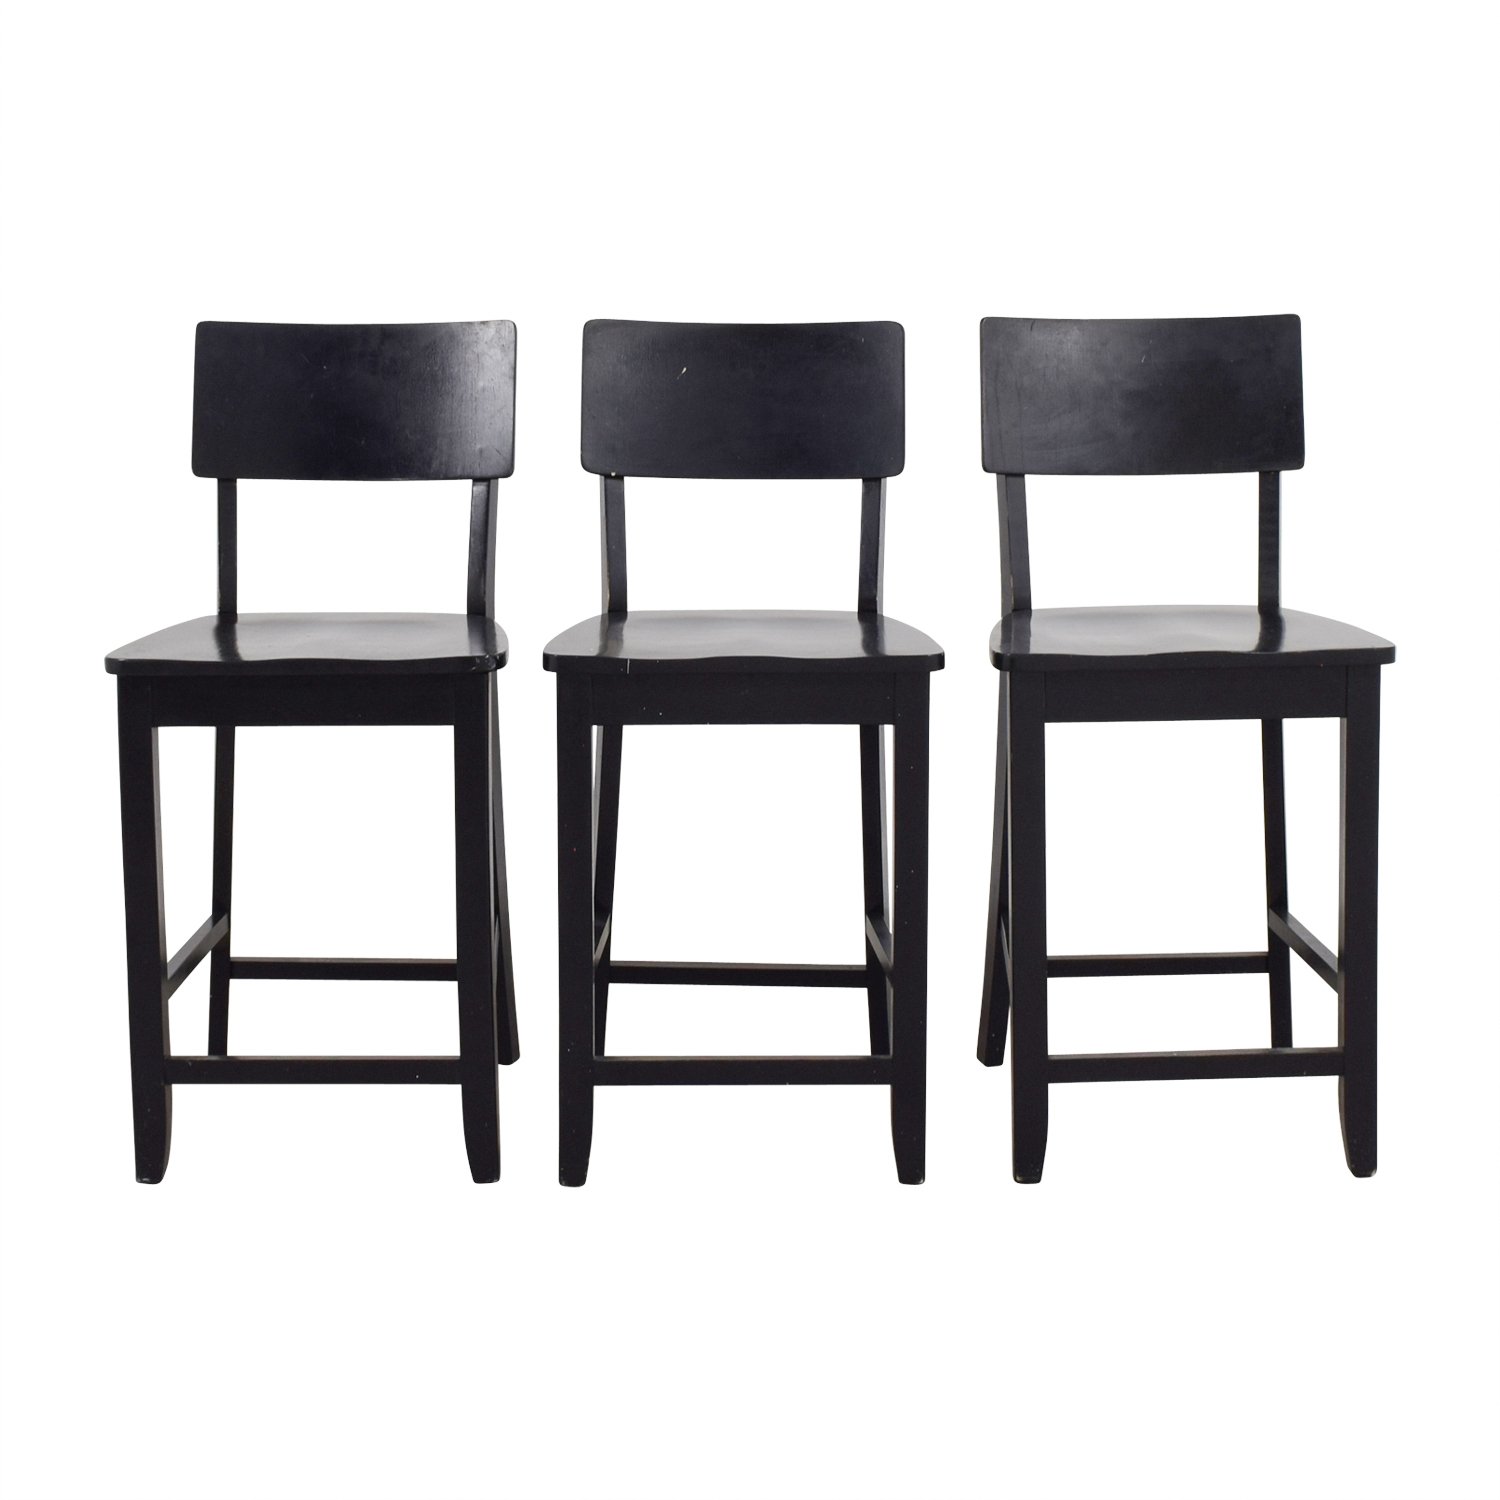 Crate & Barrel Crate & Barrel Black Wood Bar Stools on sale